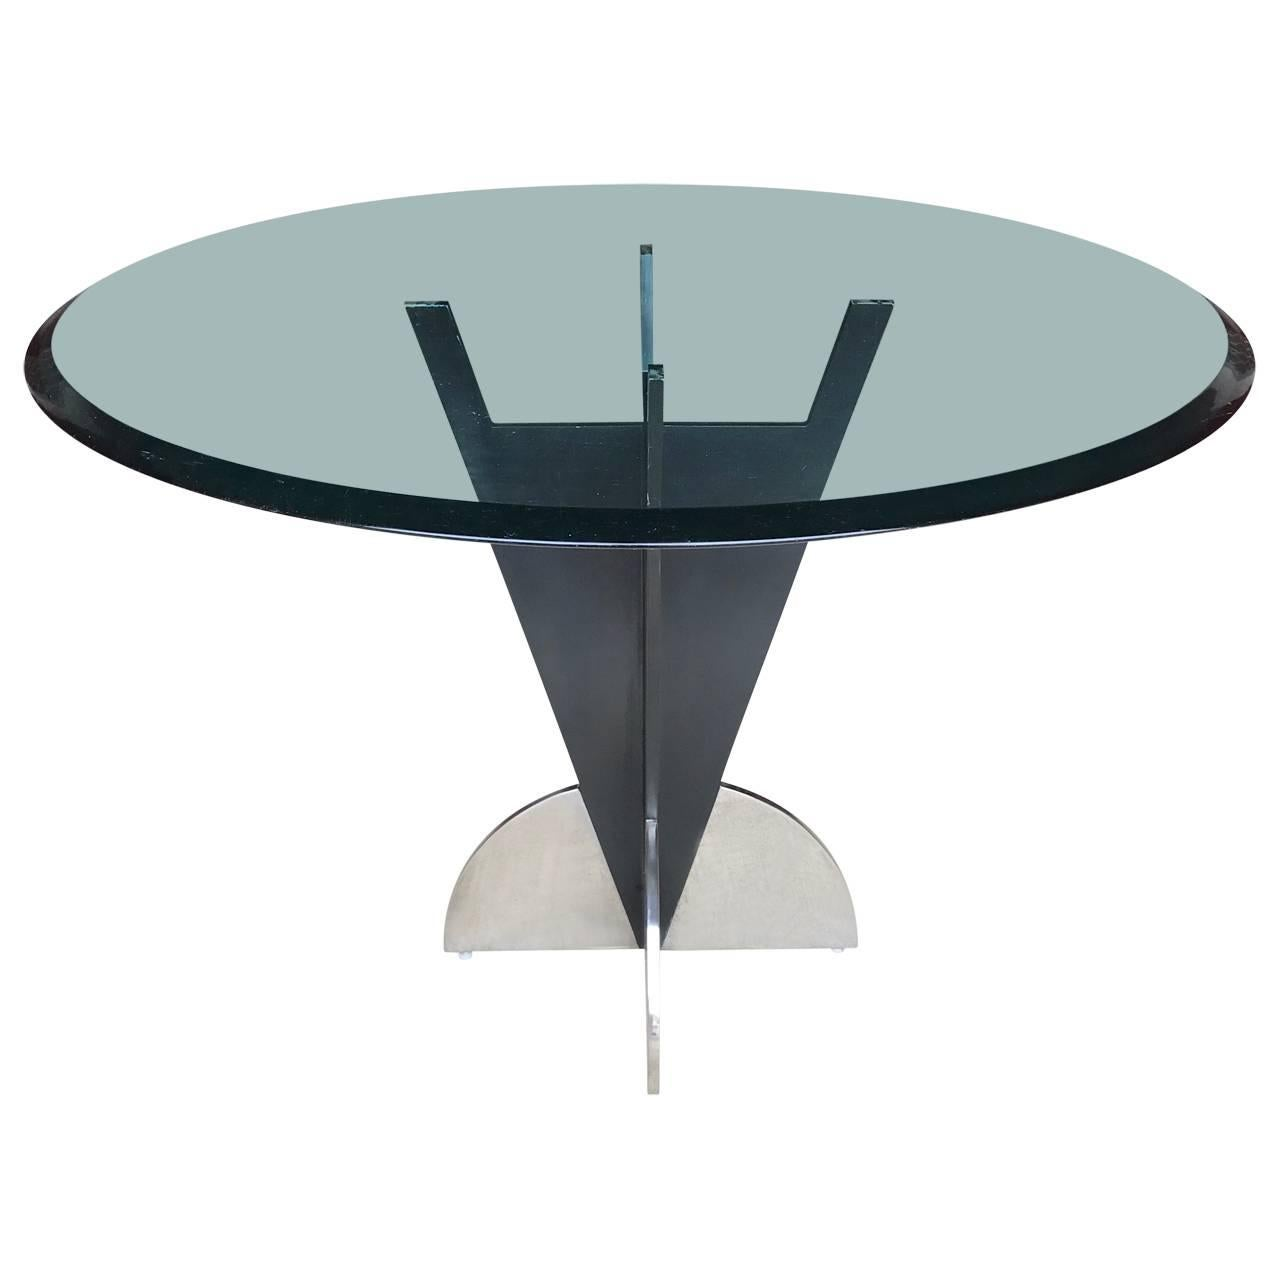 Round Brass Tubular Dining Table with Marble Top For Sale at 1stdibs